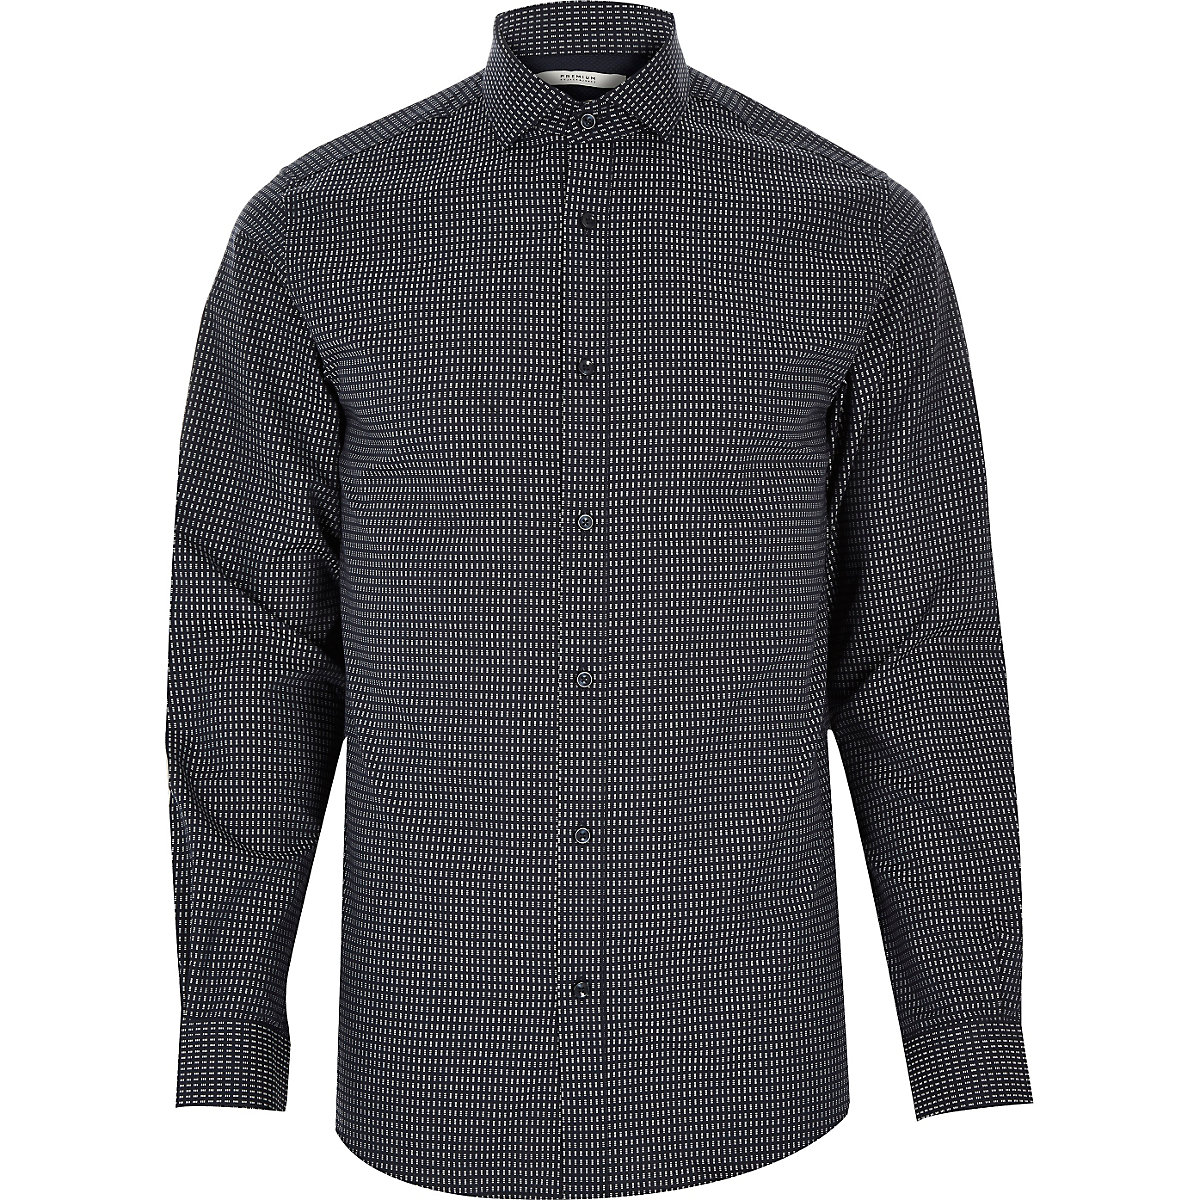 Grey Jack & Jones Premium printed shirt